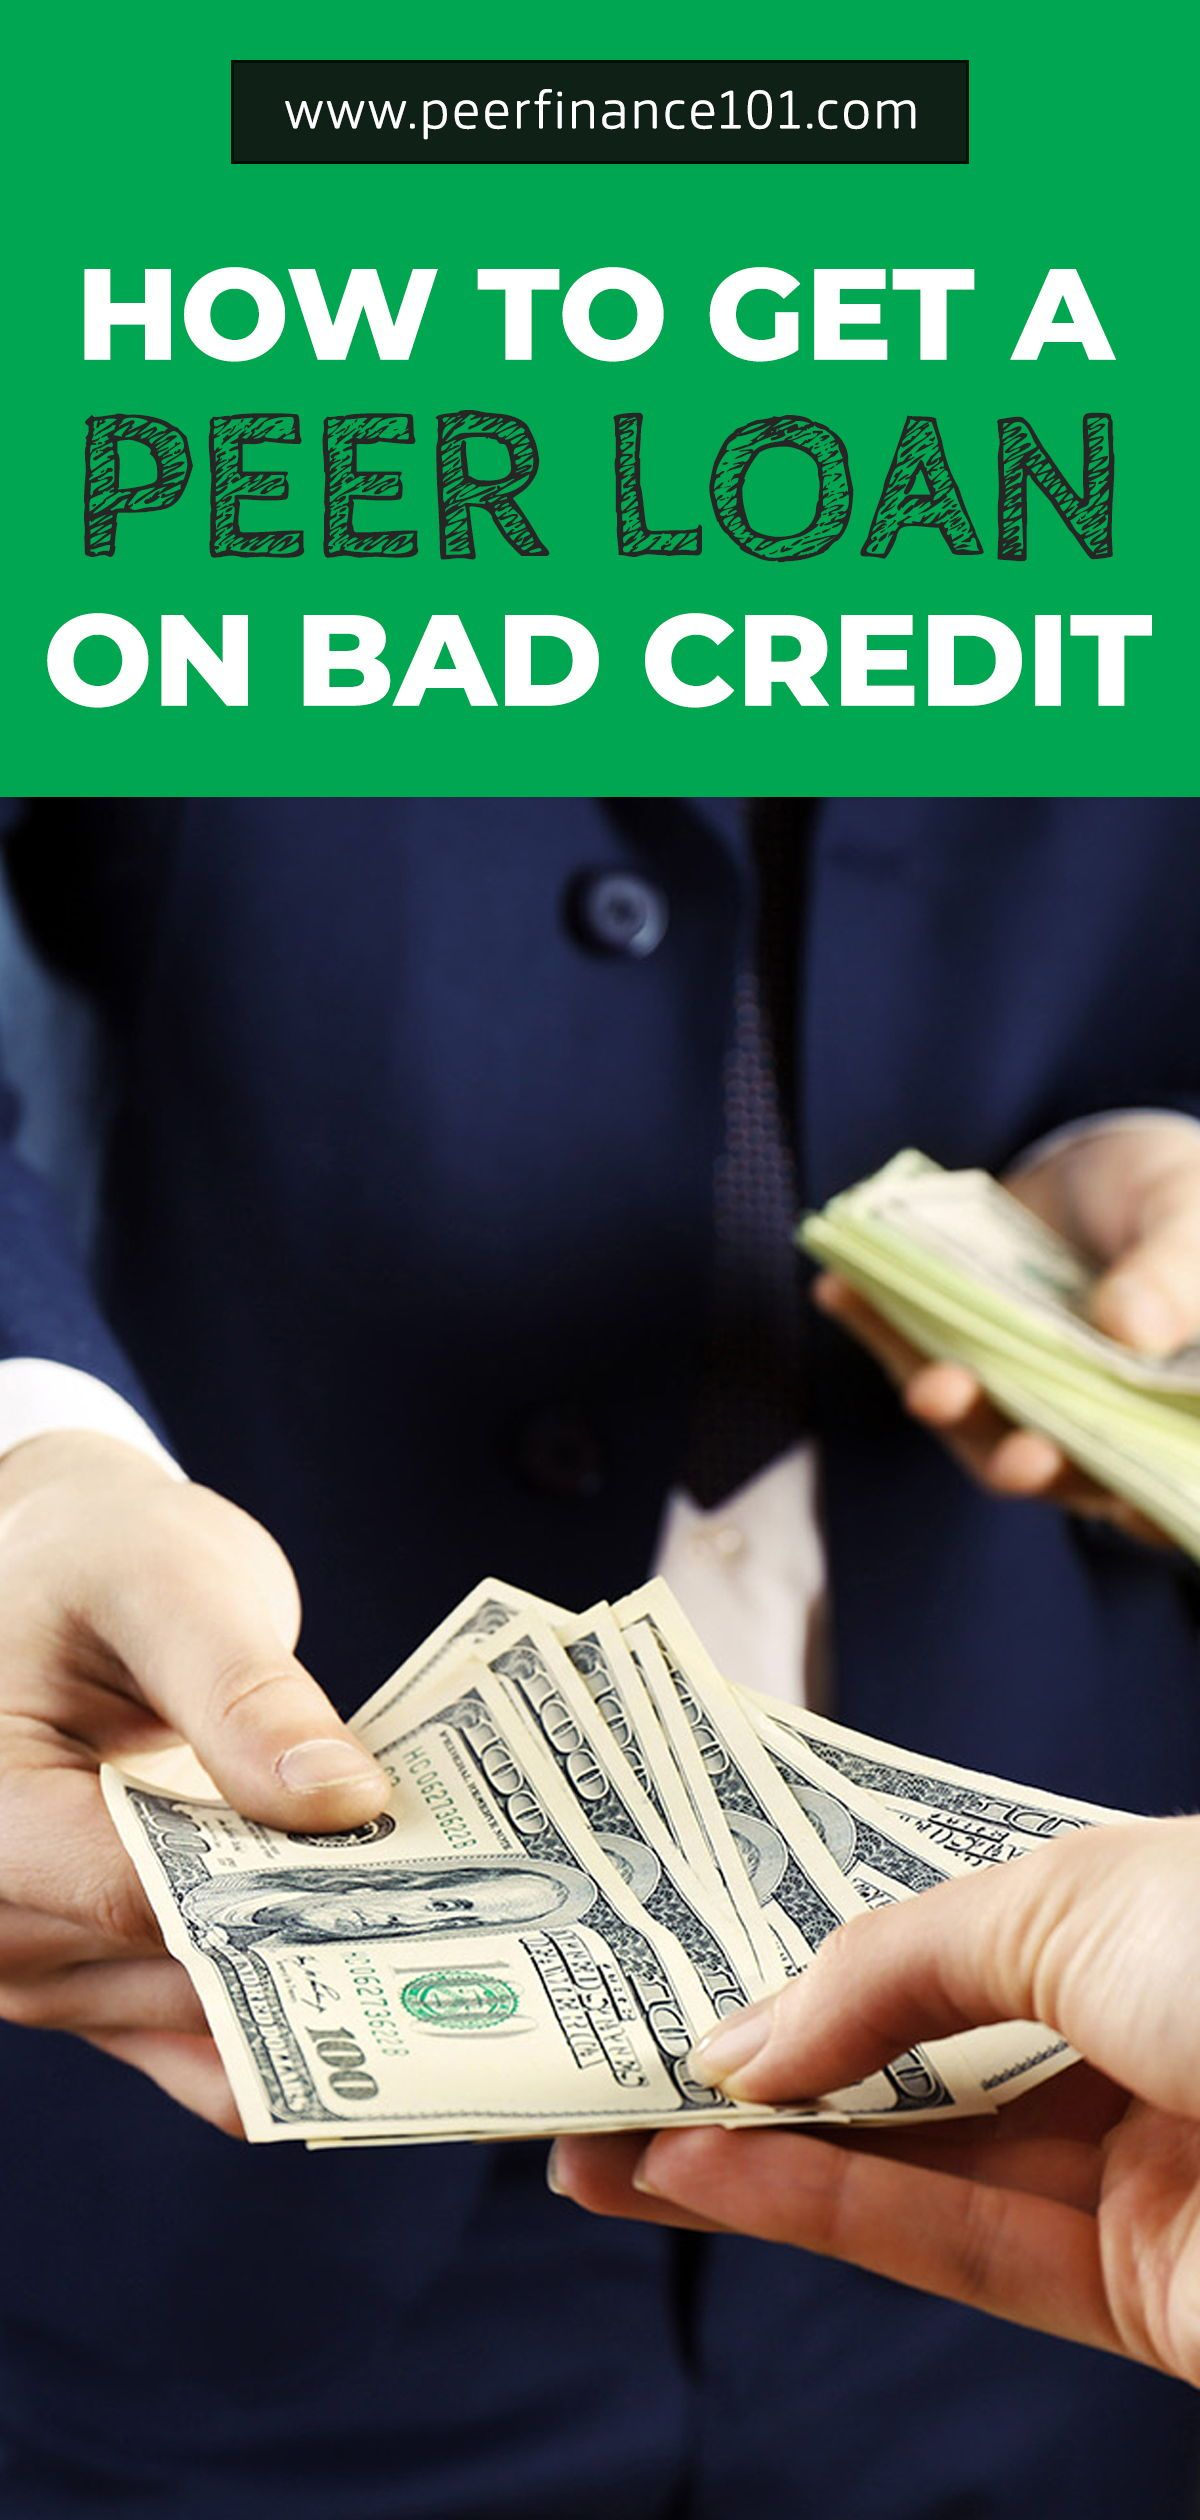 How to get a peer loan on bad credit now apply for